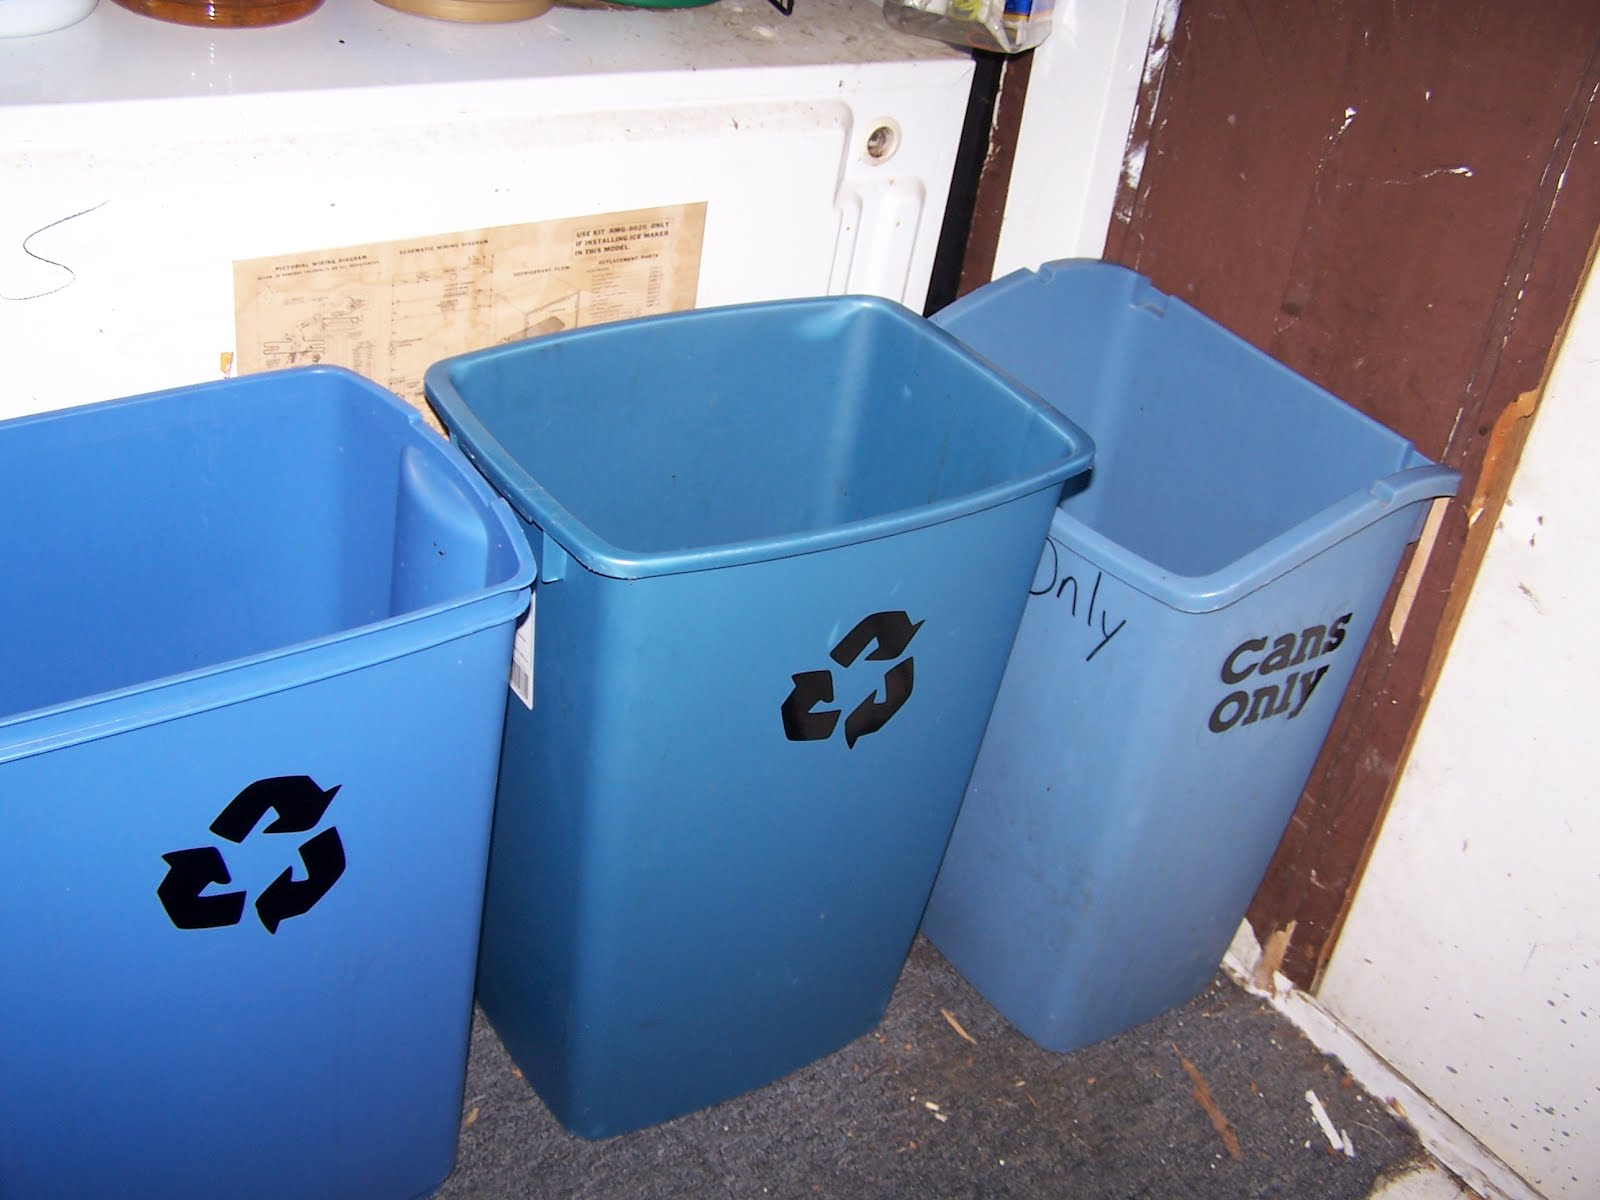 recycle bin ideas garage - The Crafty Mermaid s Grotto Week 6 Challenge Recycling